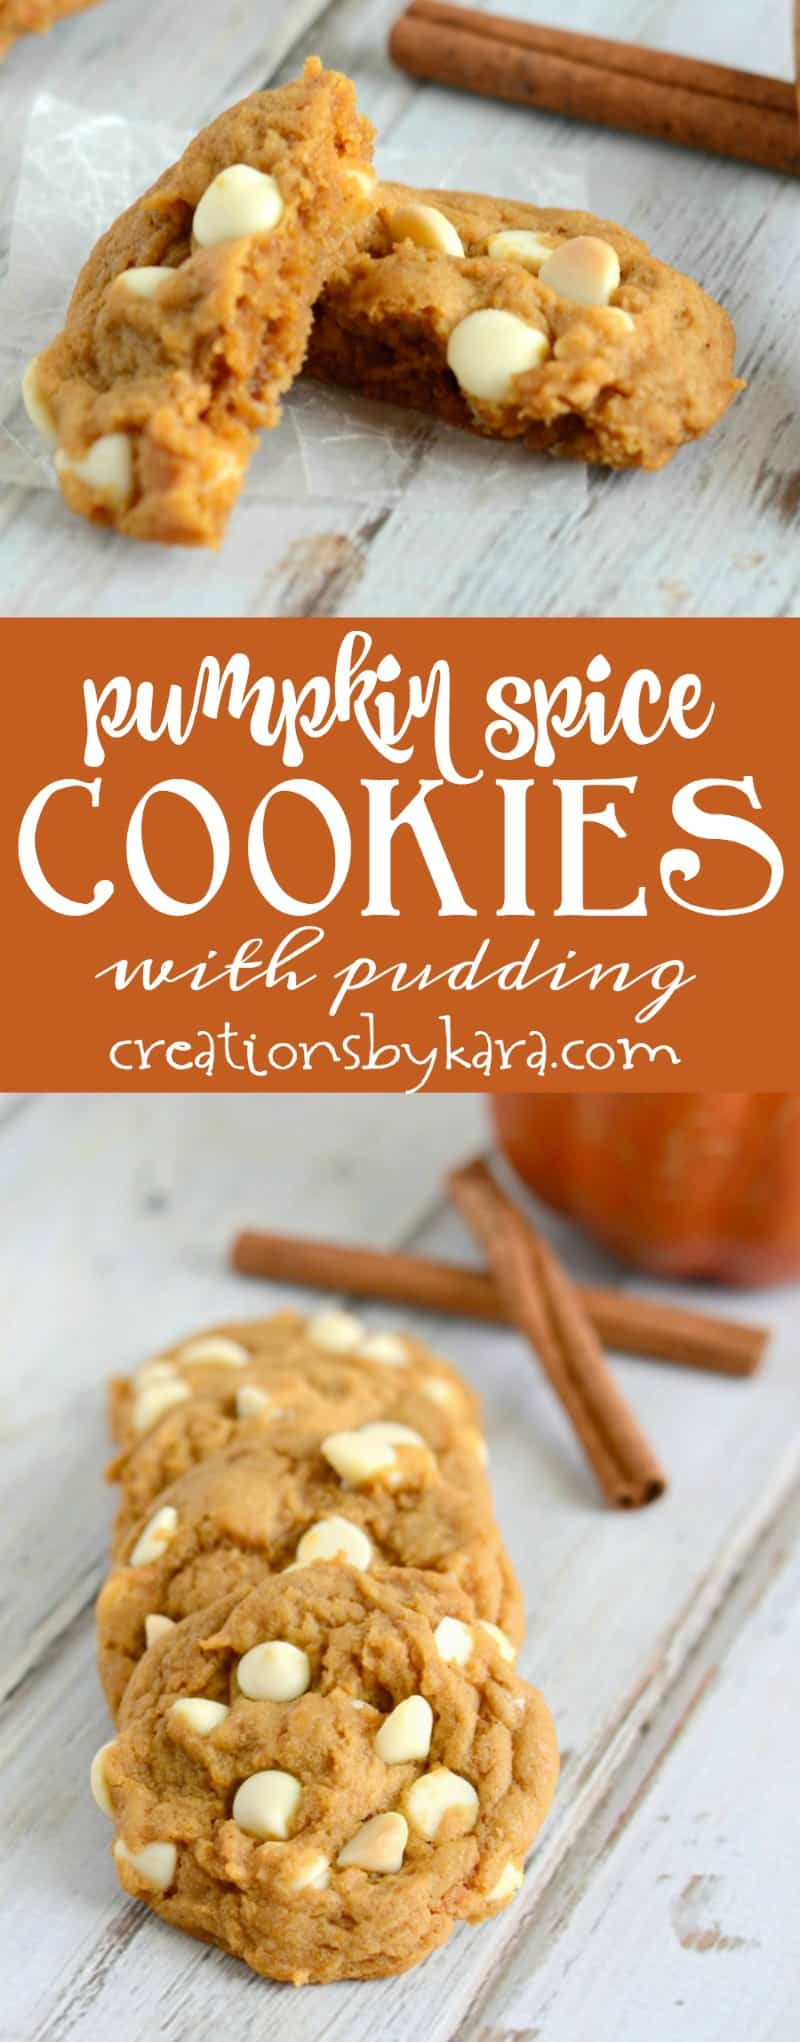 Pudding mix makes these Pumpkin Spice Cookies extra soft and yummy! A no-fail cookie recipe that is perfect for fall.